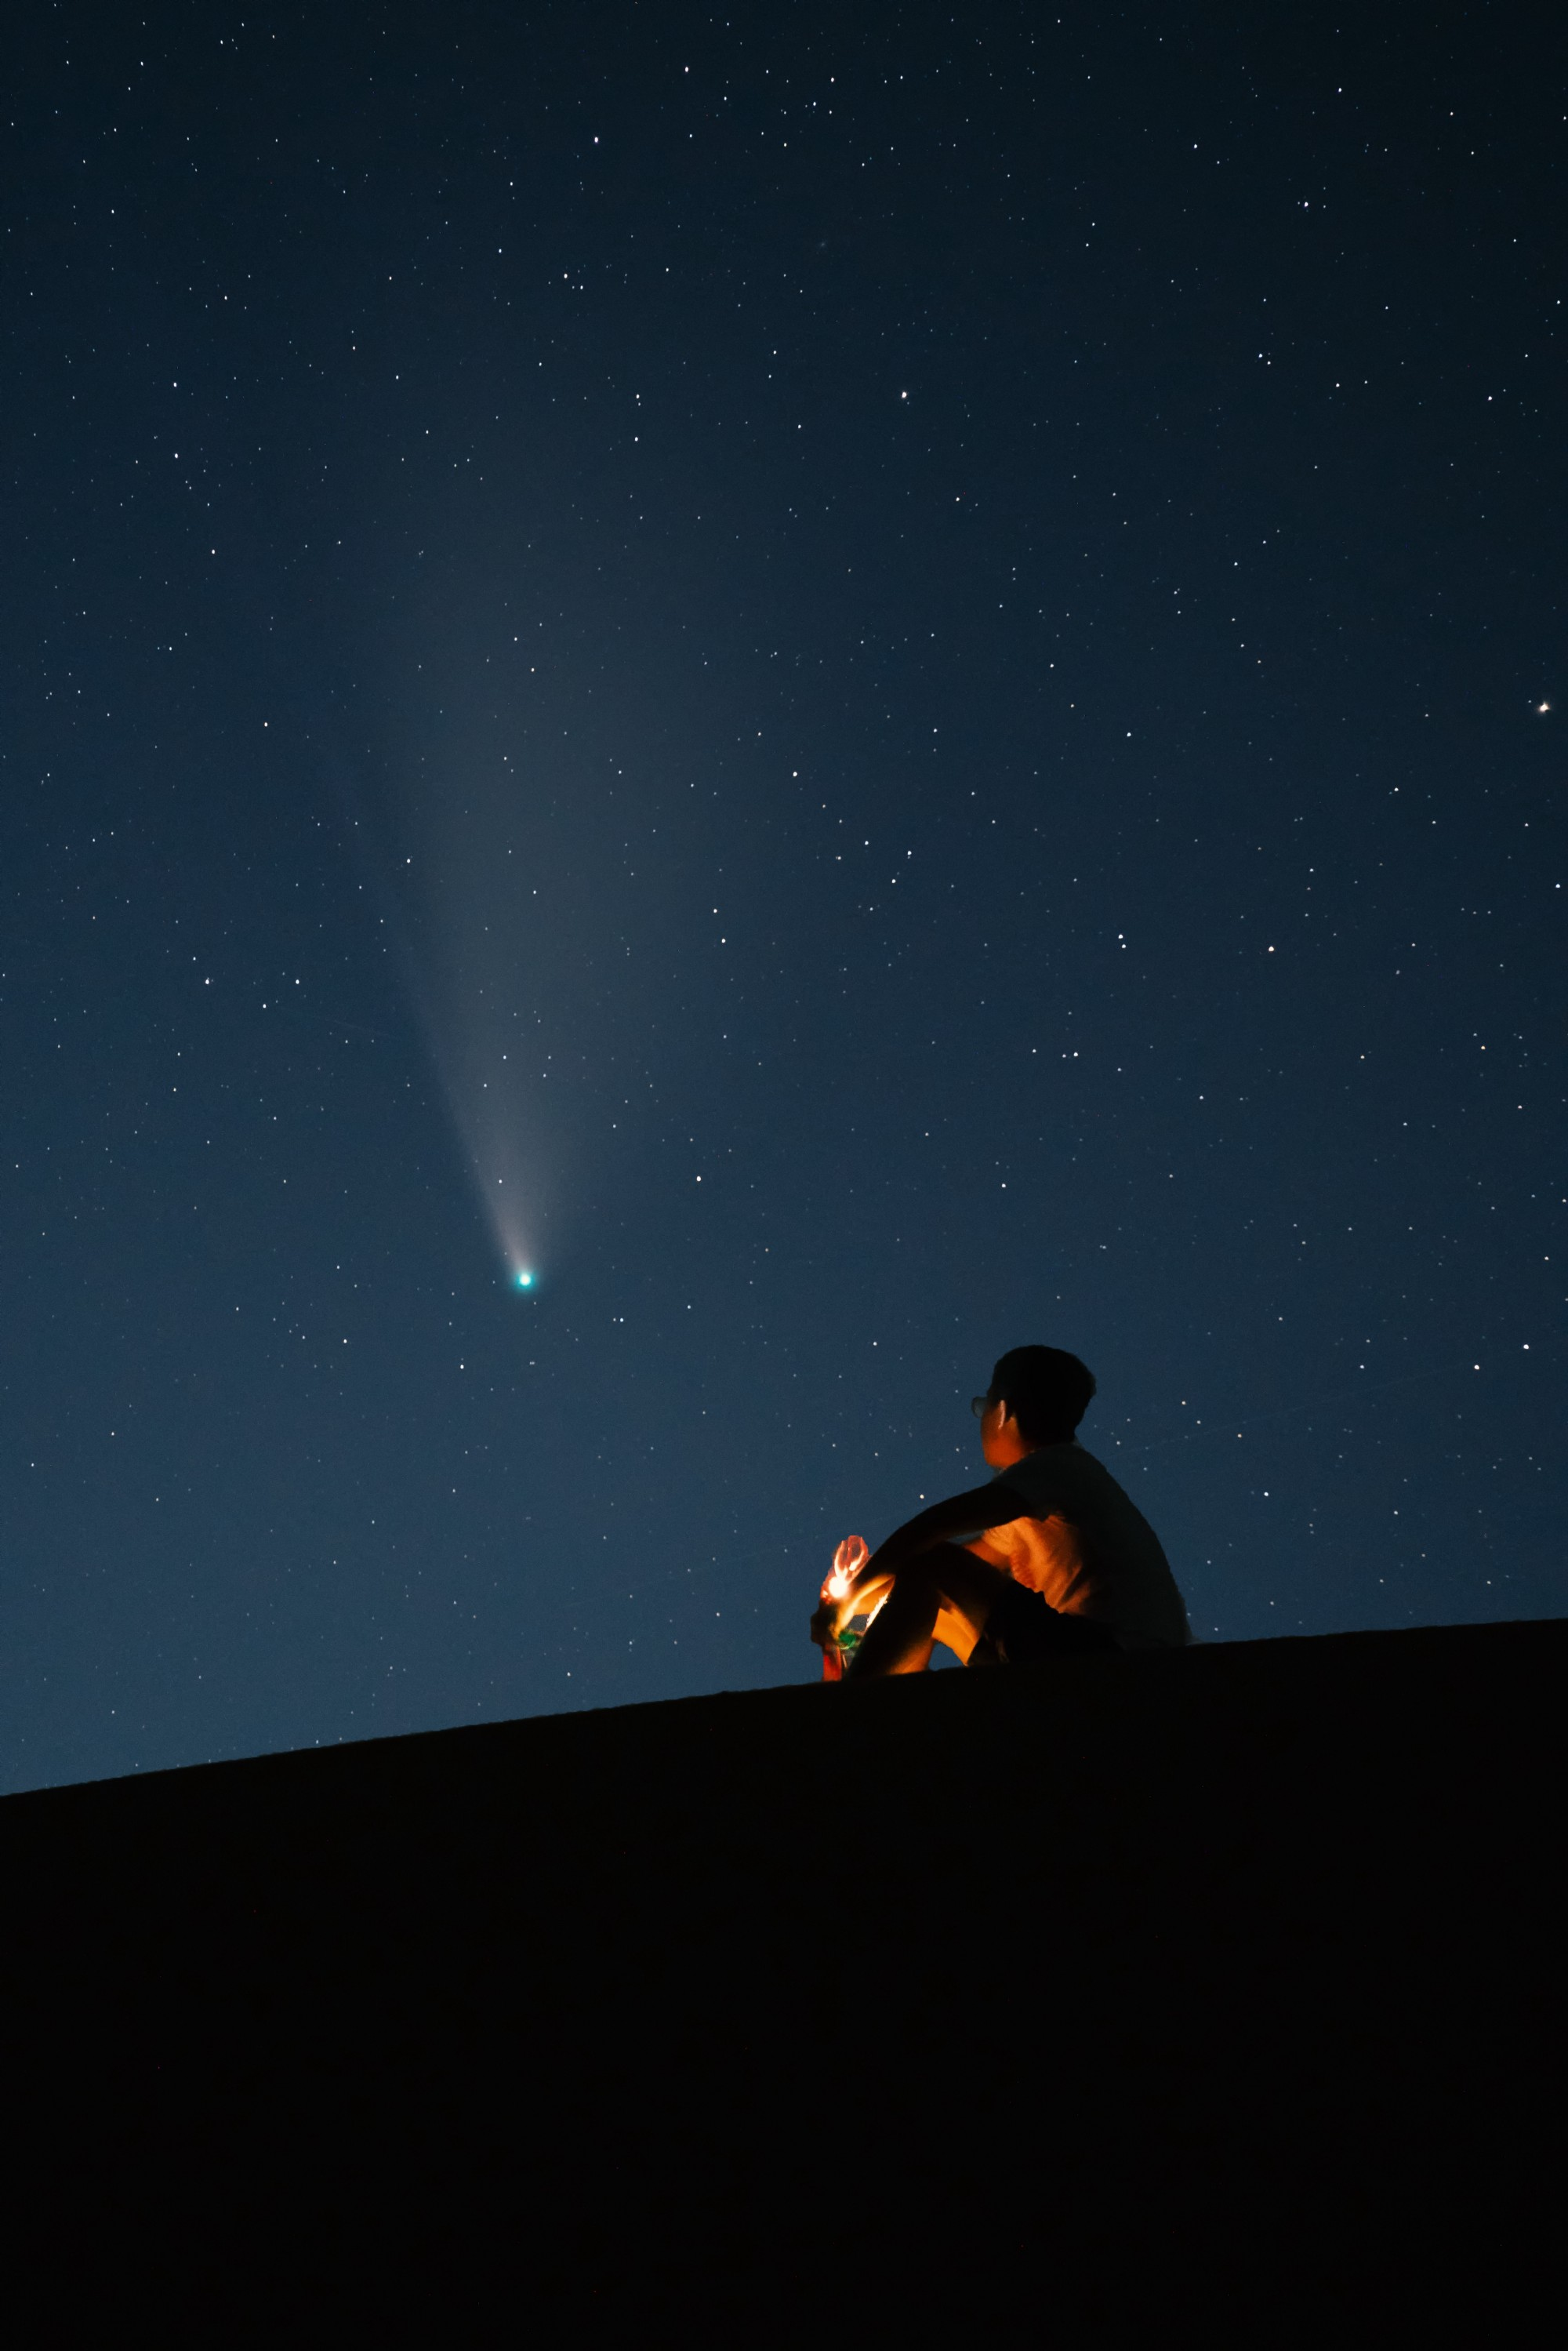 close up on nighttime image of a person sitting on earth looking up to the universe